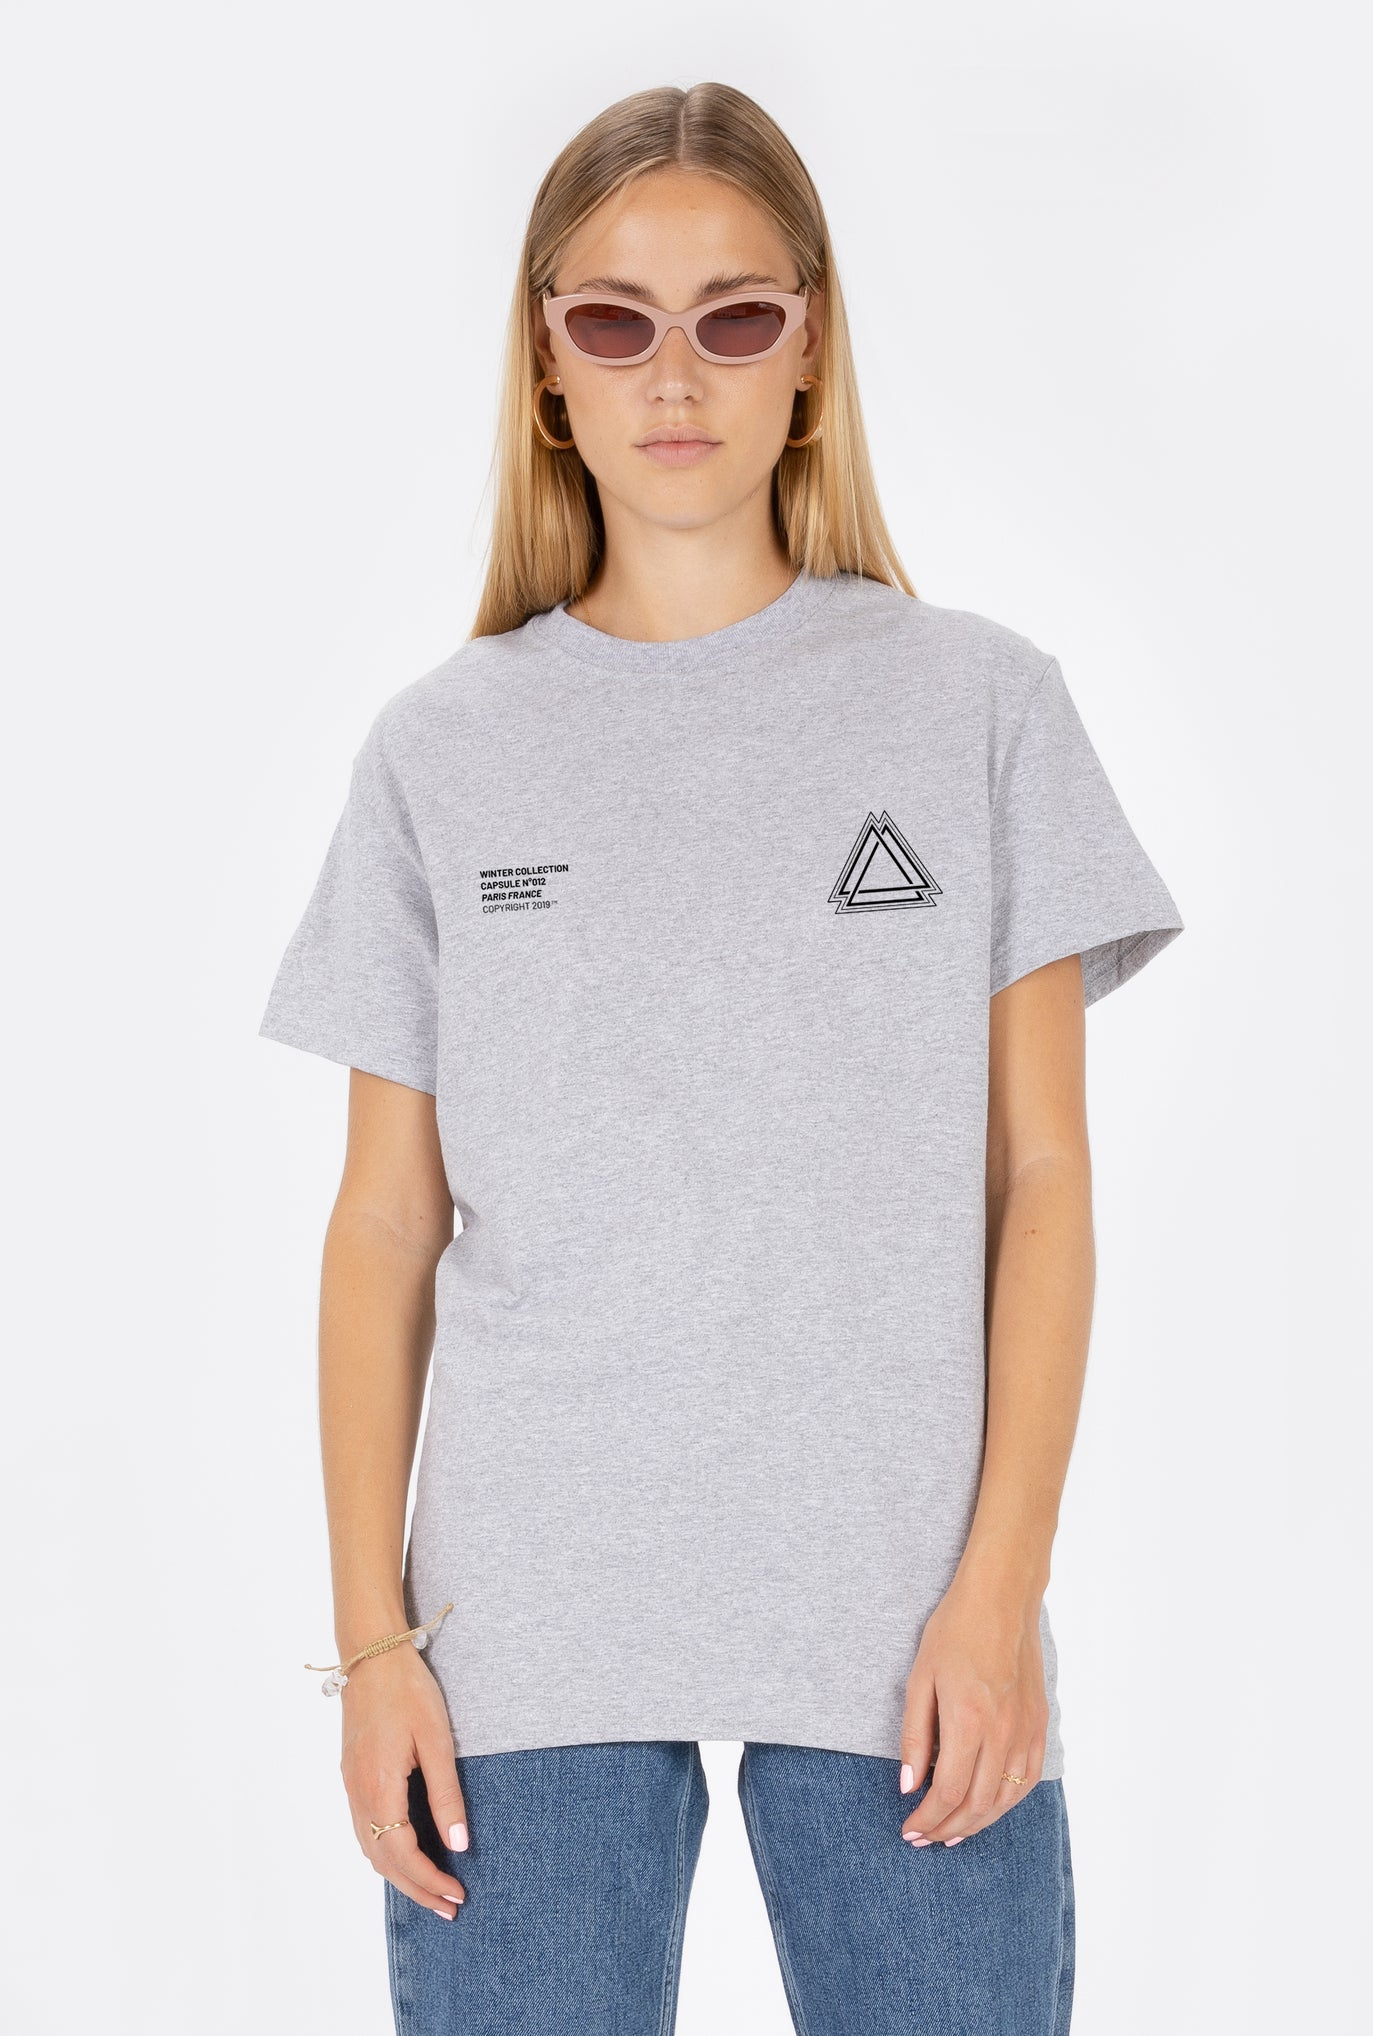 T-Shirt S/S Triforce